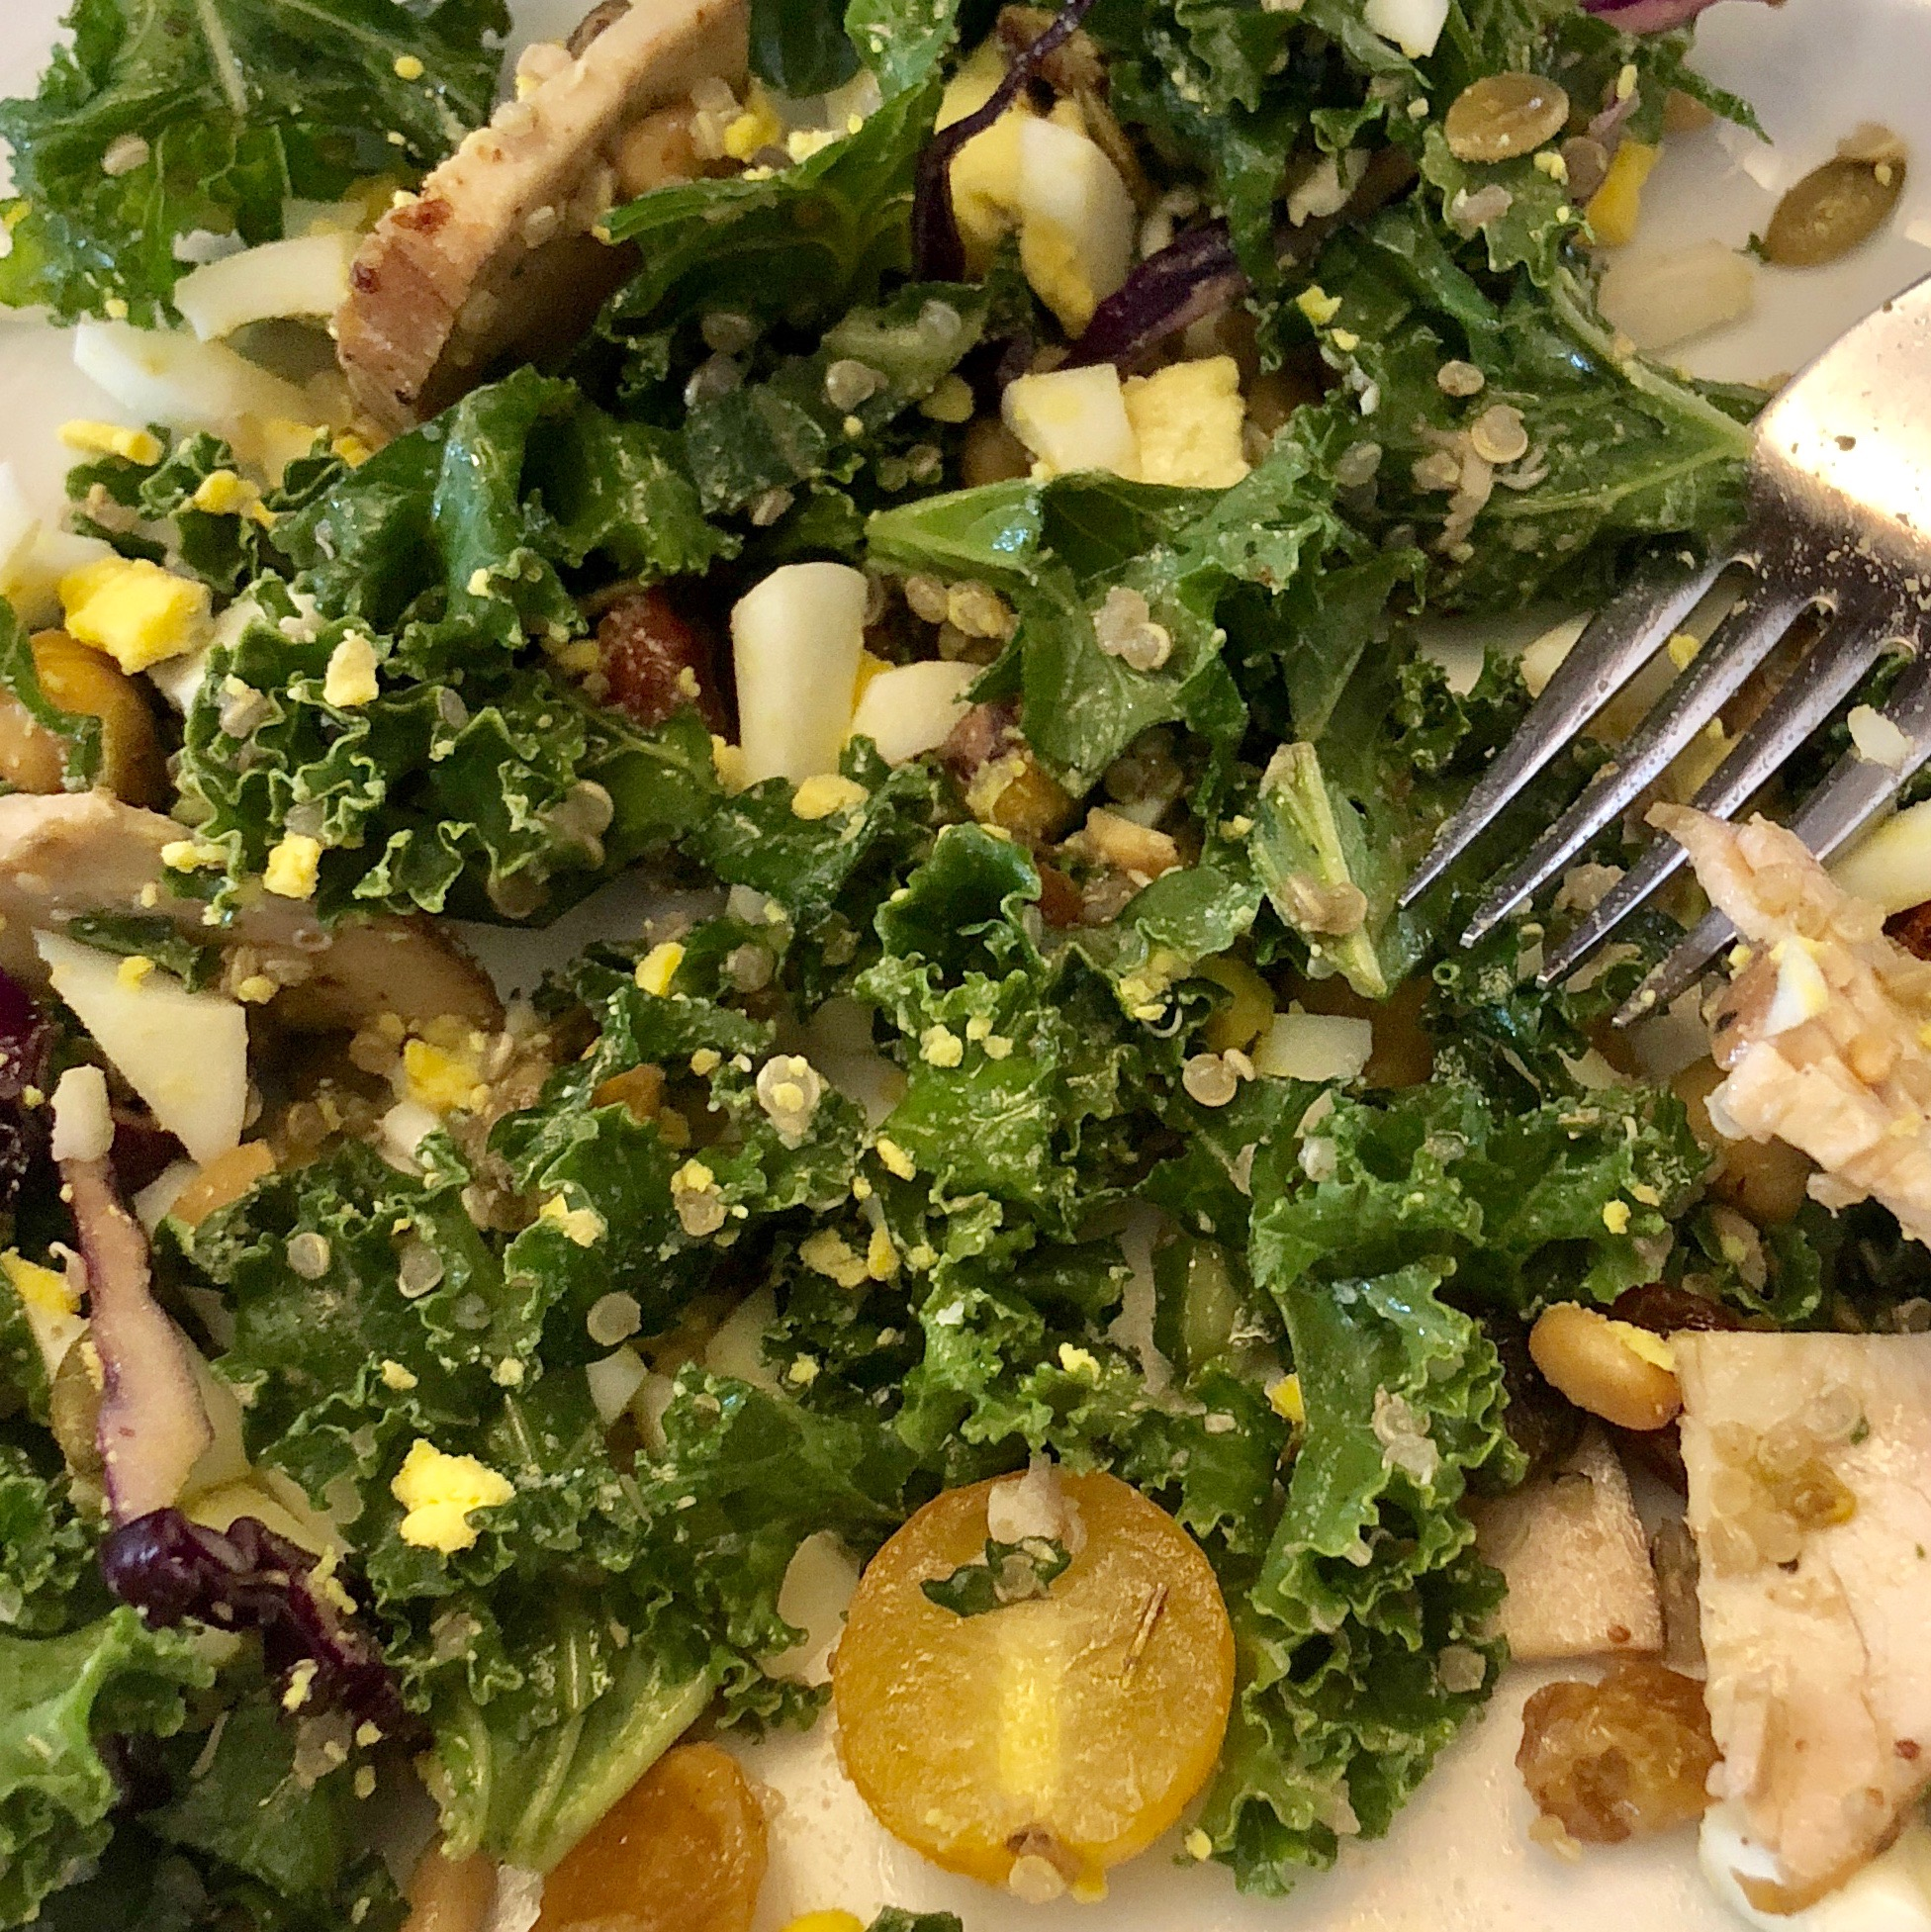 Kale, yellow cherry tomatoes, quinoa, organic chicken, mushrooms, red cabbage and a hard boiled egg, tossed in olive oil and lemon dressing.